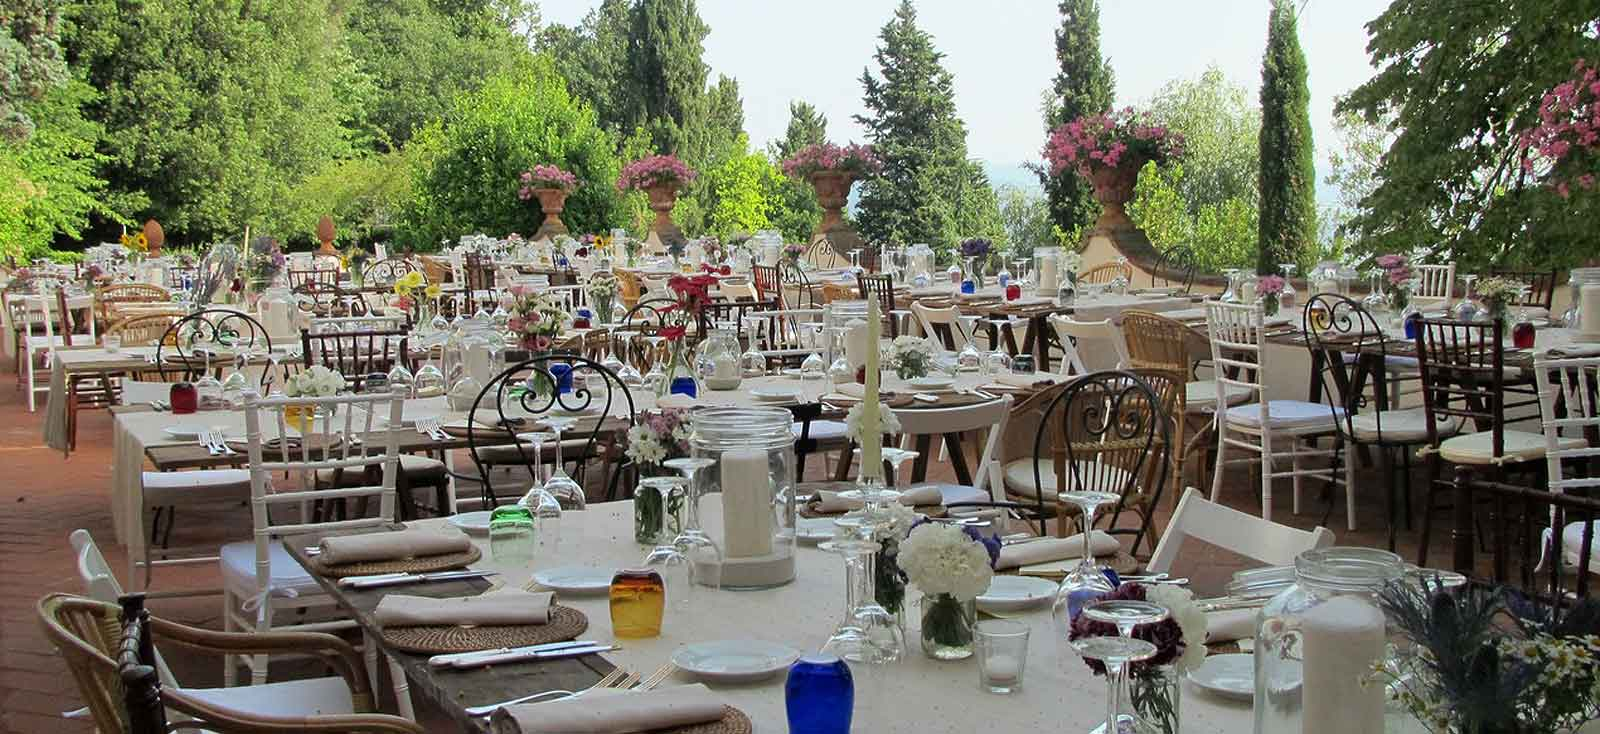 Outdoor Wedding In Italy Civil Religious And Symbolic